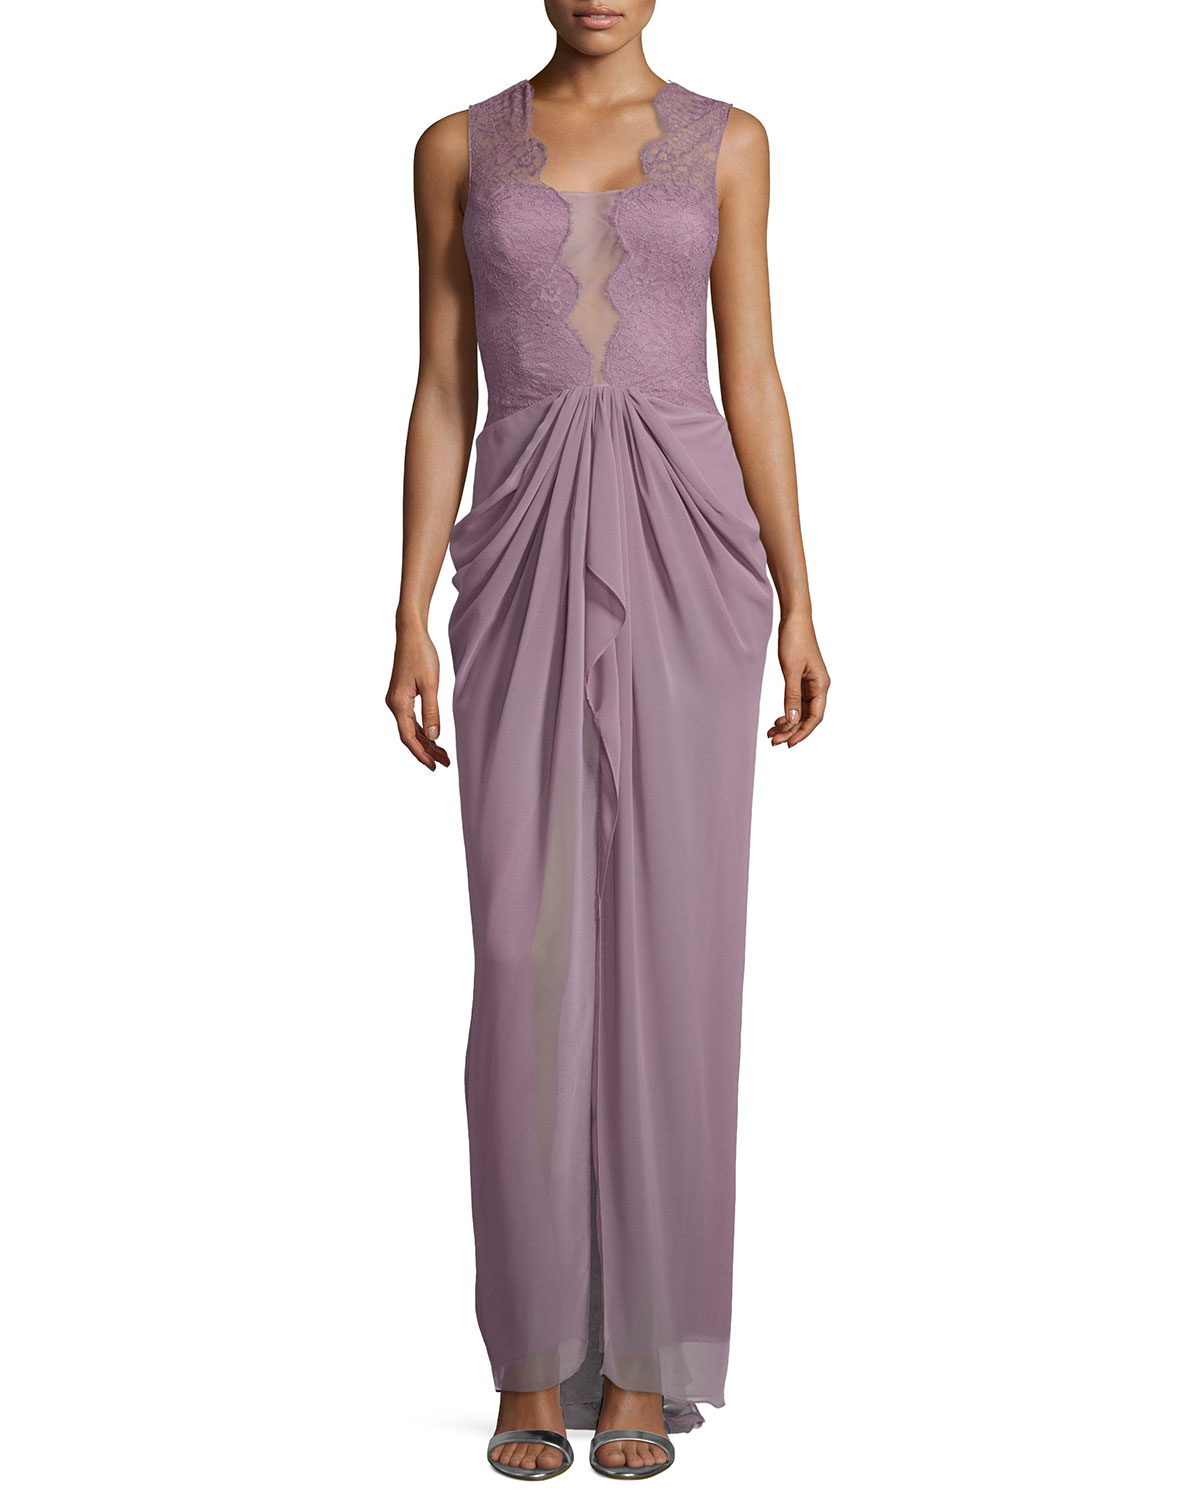 Lyst - Bcbgmaxazria Brandy Sleeveless Lace Illusion Gown in Purple